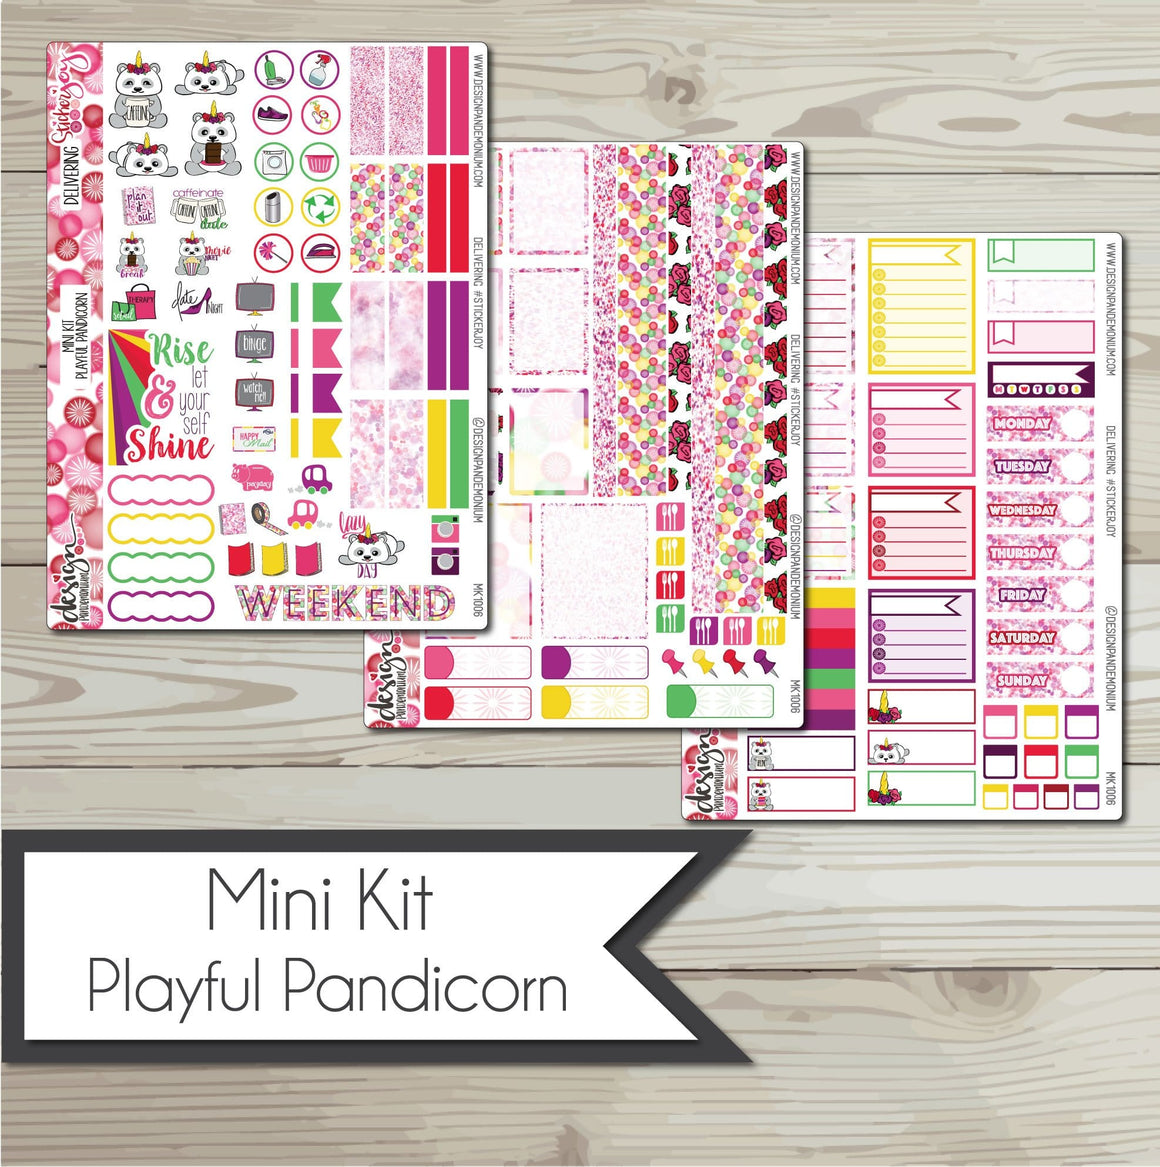 Mini Kit - Playful Pandicorn